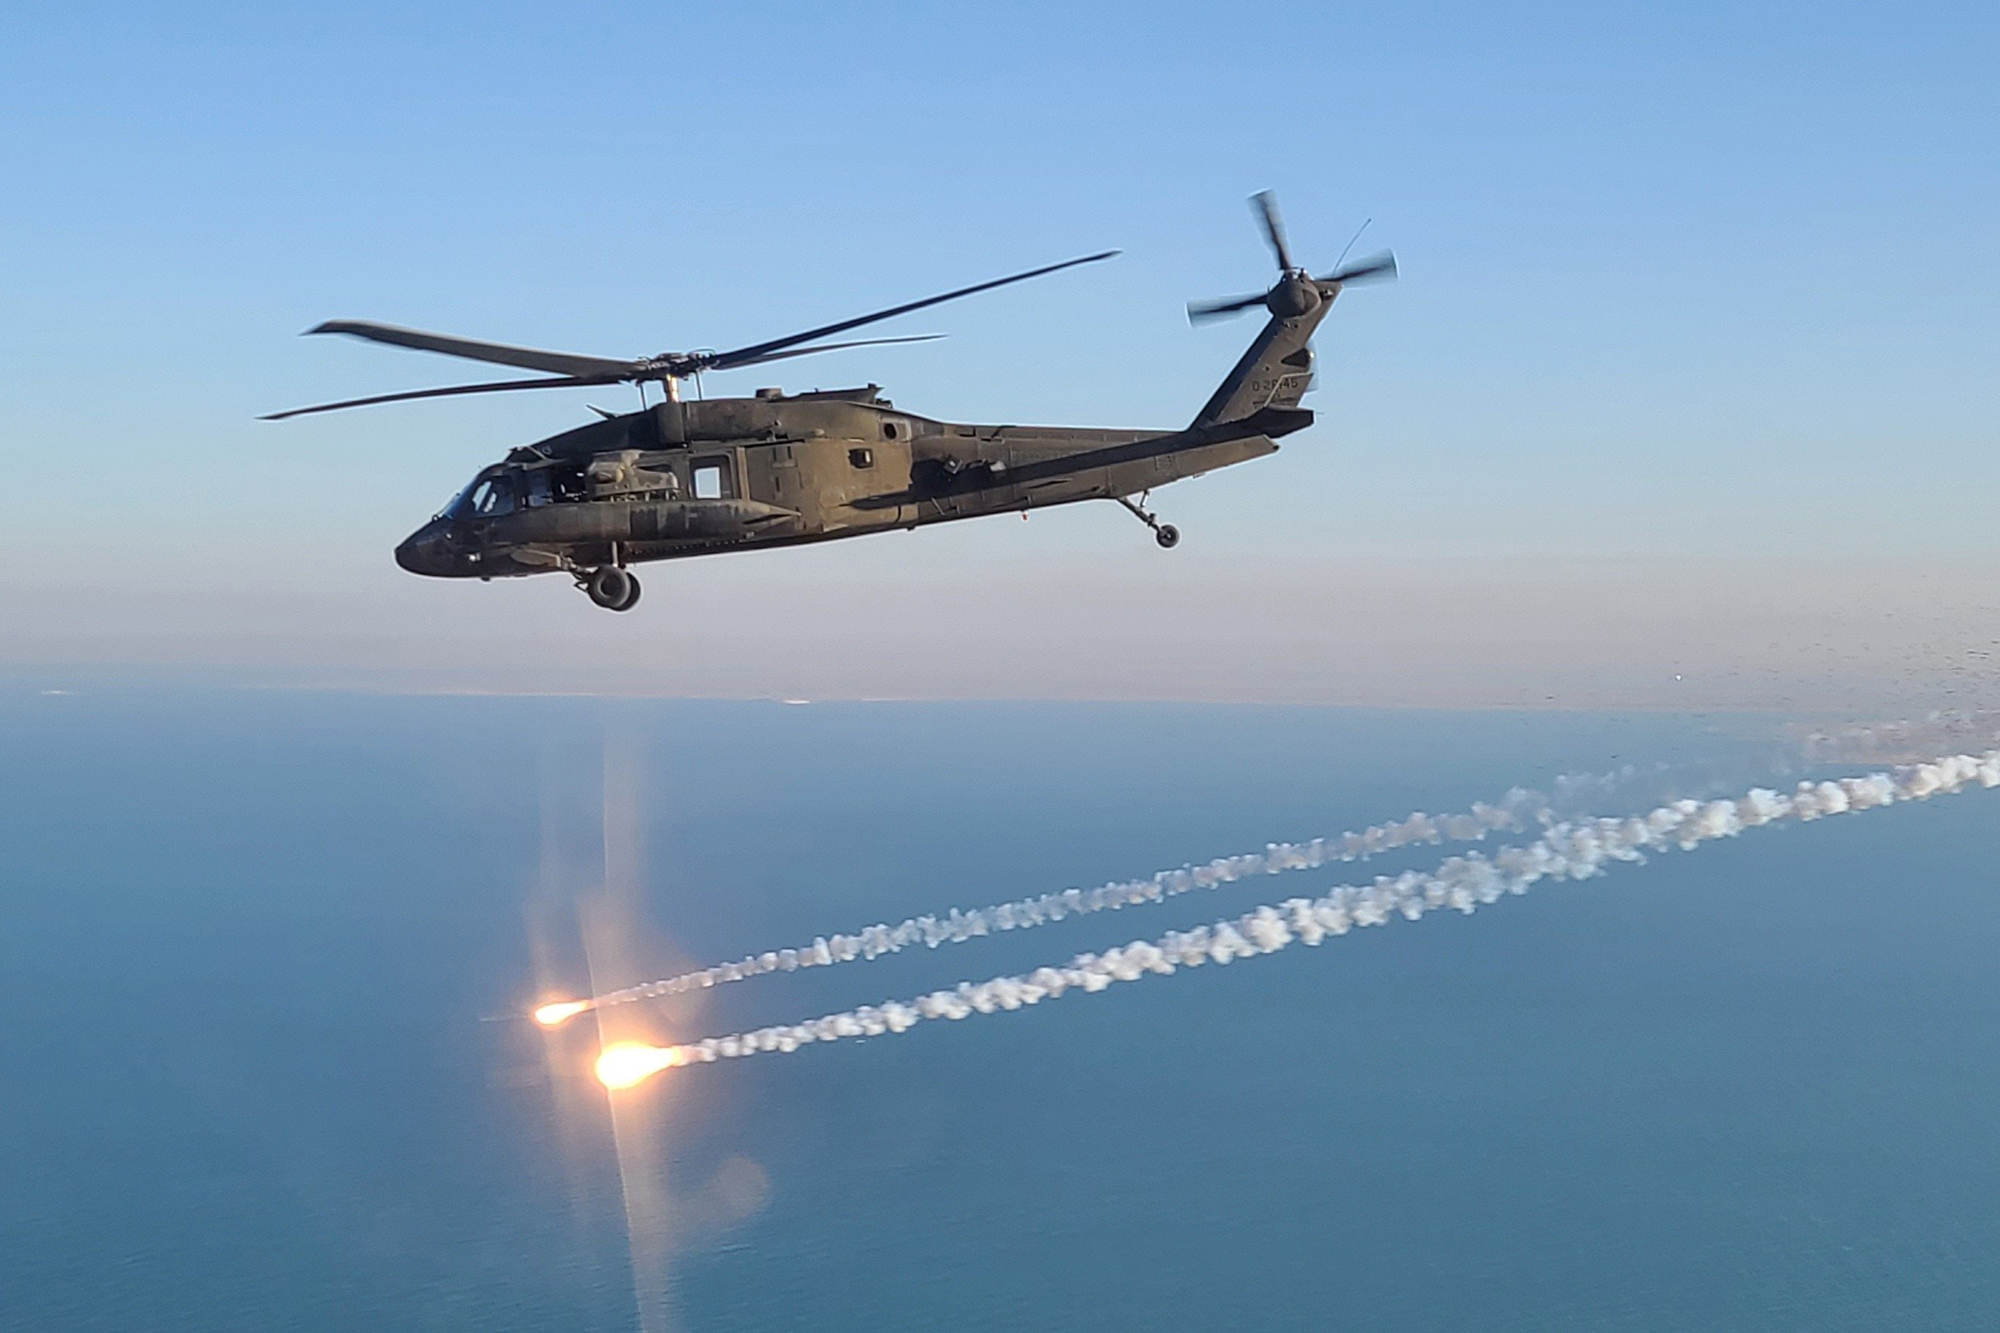 A UH-60 Black Hawk helicopter, operated by soldiers with Alpha Company, 2-104th General Support Aviation Battalion, 28th Expeditionary Combat Aviation Brigade, flies over the 28th ECAB's area of operations in the Middle East. (Sgt. Andrew Johnson/Army)